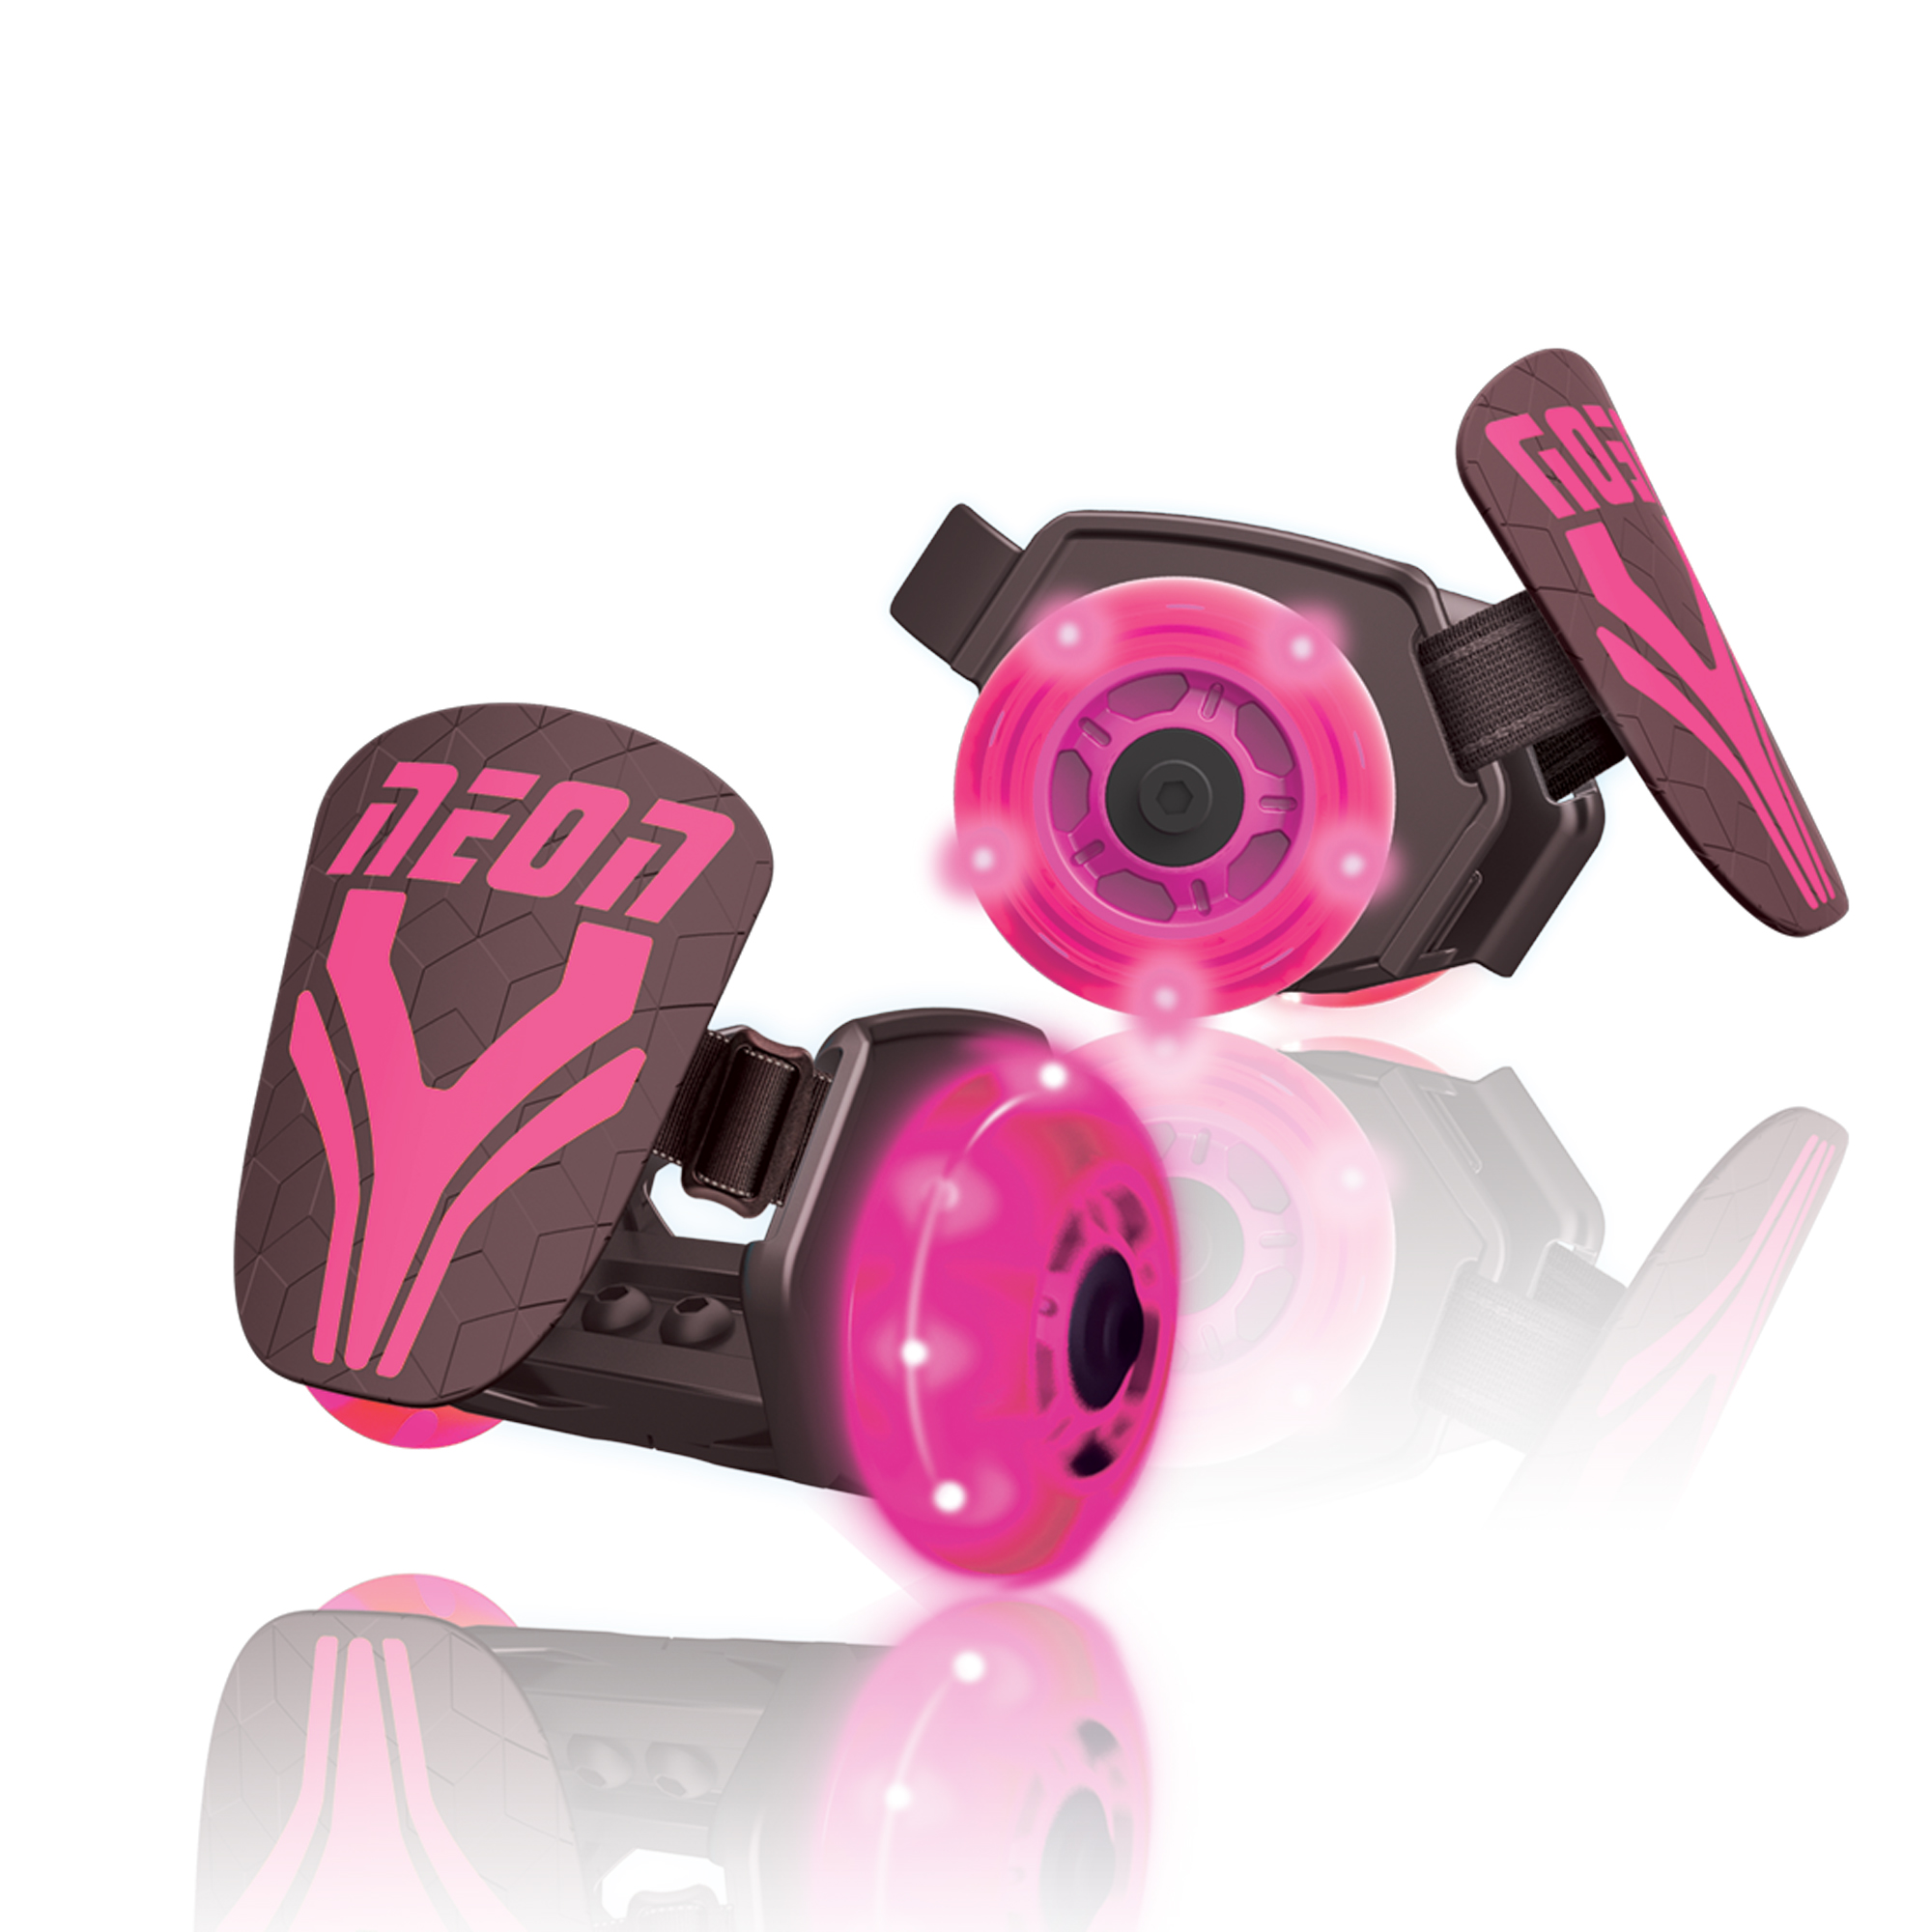 Neon Vybe Heel Skates Street Roller Pink for Kids, with LED light-up wheels